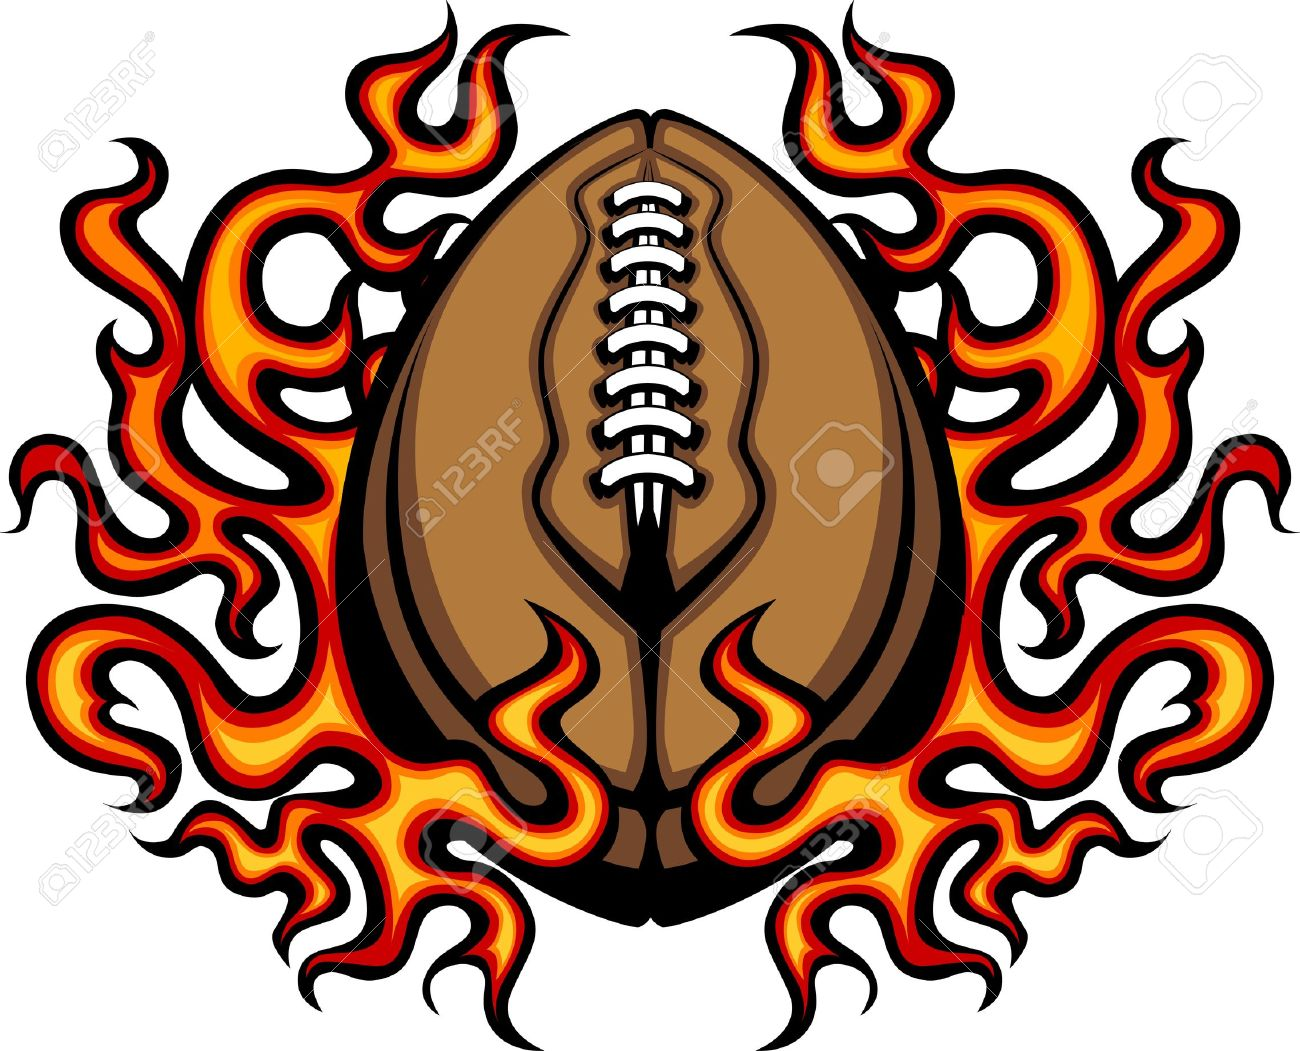 American Football Template with Flames Stock Vector - 10457696